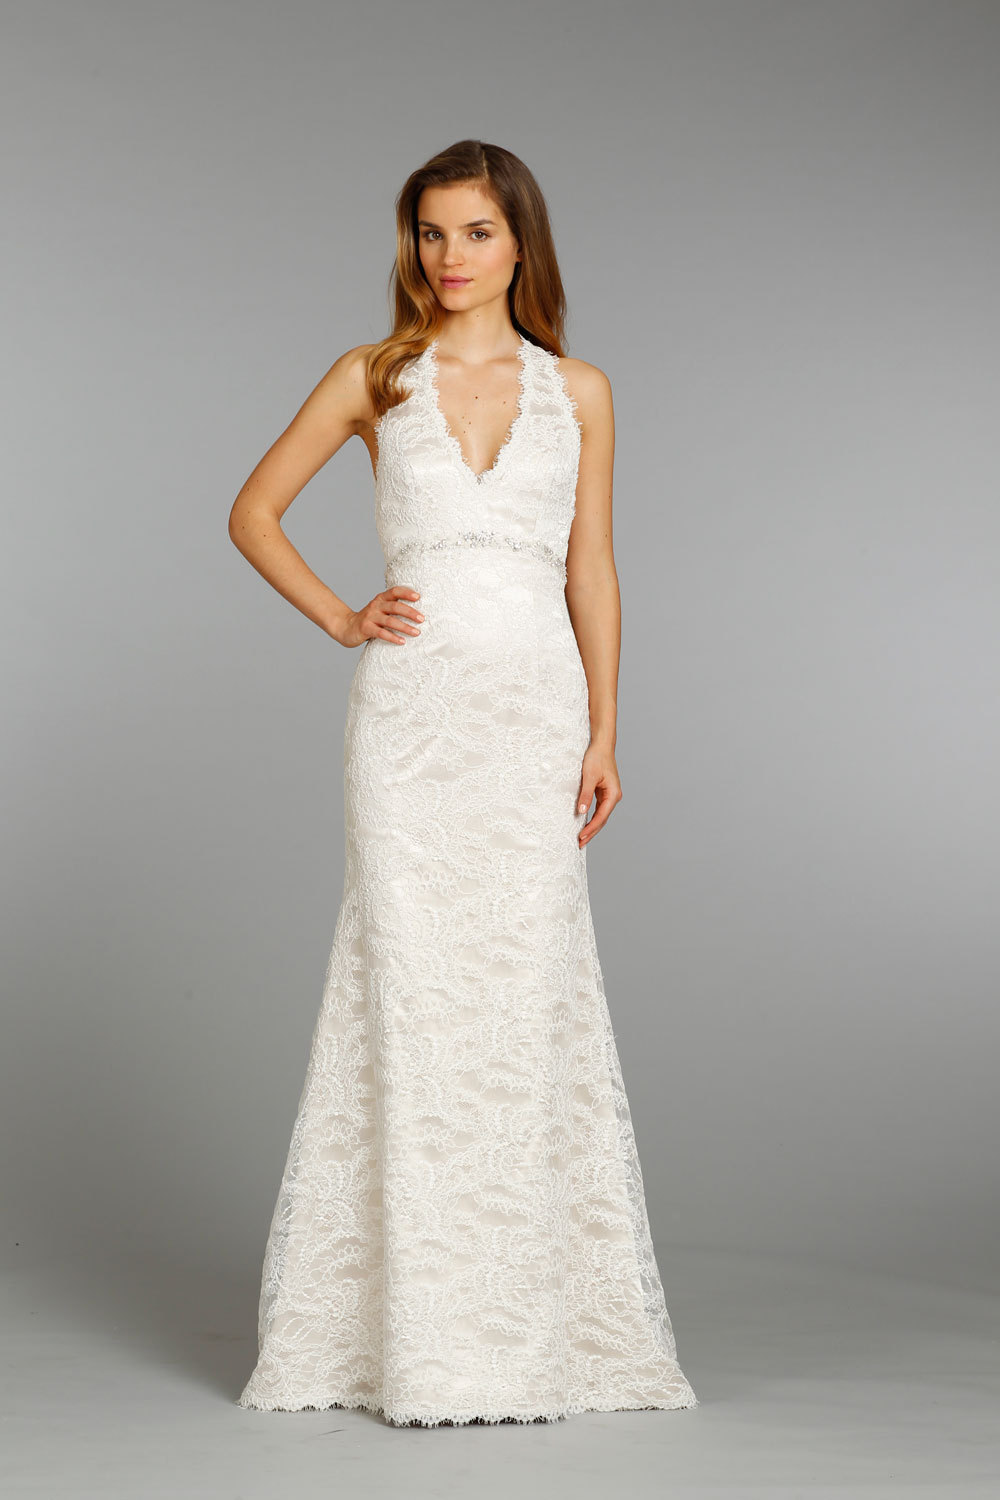 Jim hjelm wedding dress fall 2013 bridal 8359 for Jim hjelm wedding dresses